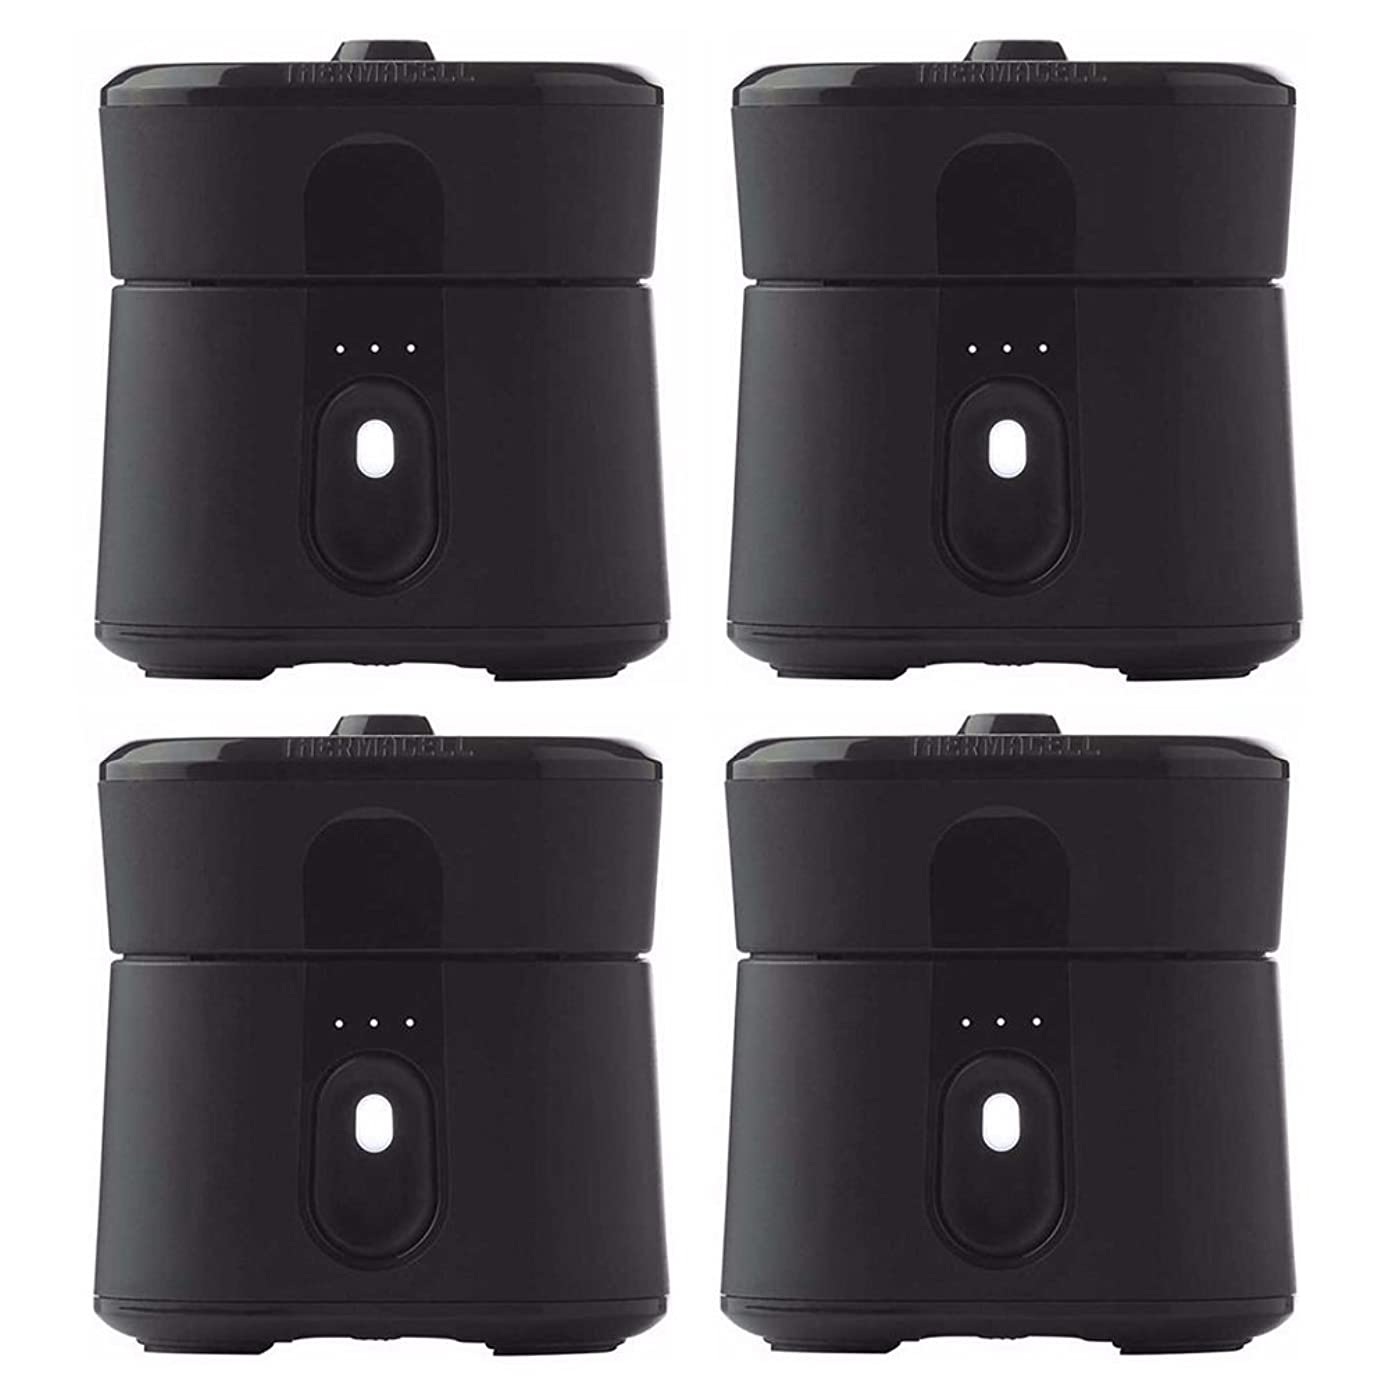 Thermacell Radius Zone Pocket-Sized Mosquito Repelling Device (Black) 4-Pack: Each Protects 110 Sq. Ft. Zone